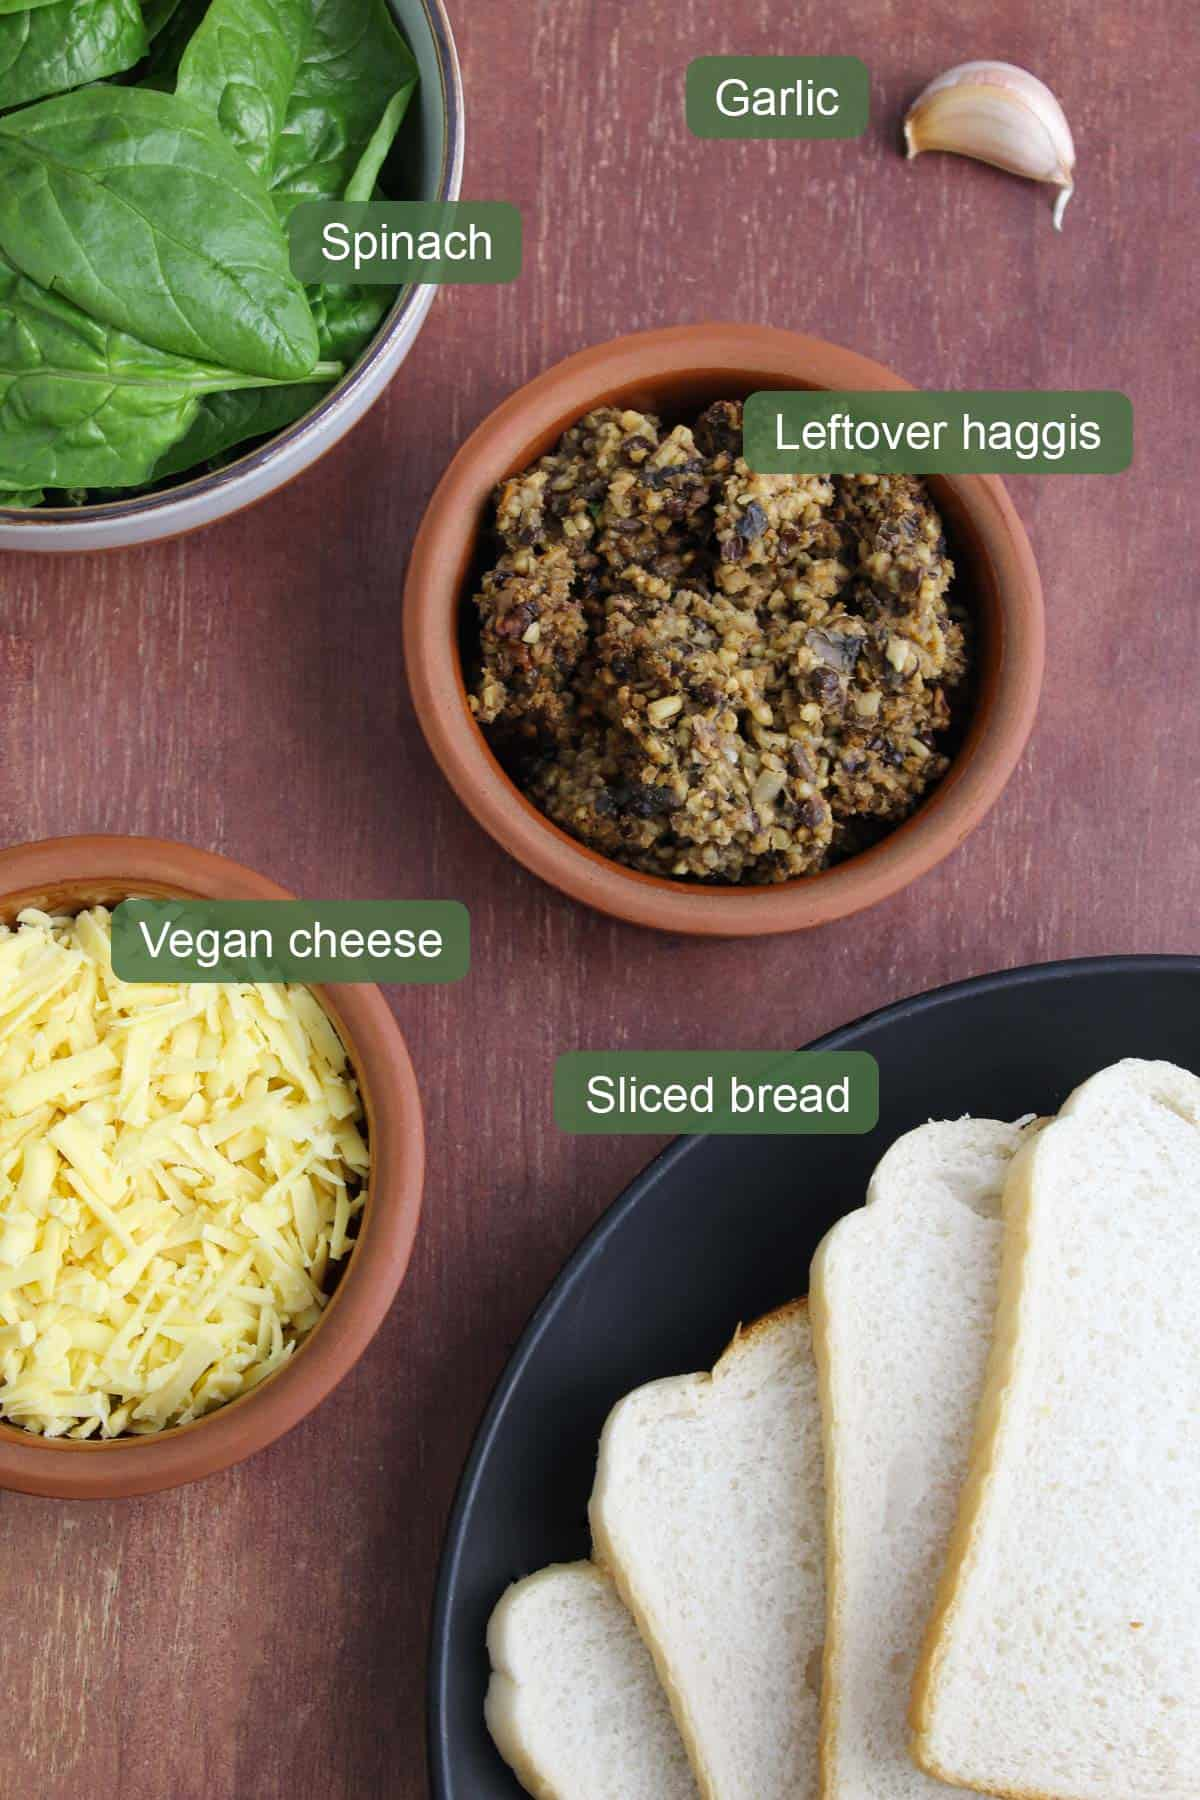 List of Ingredients To Make Haggis Toasted Sandwich